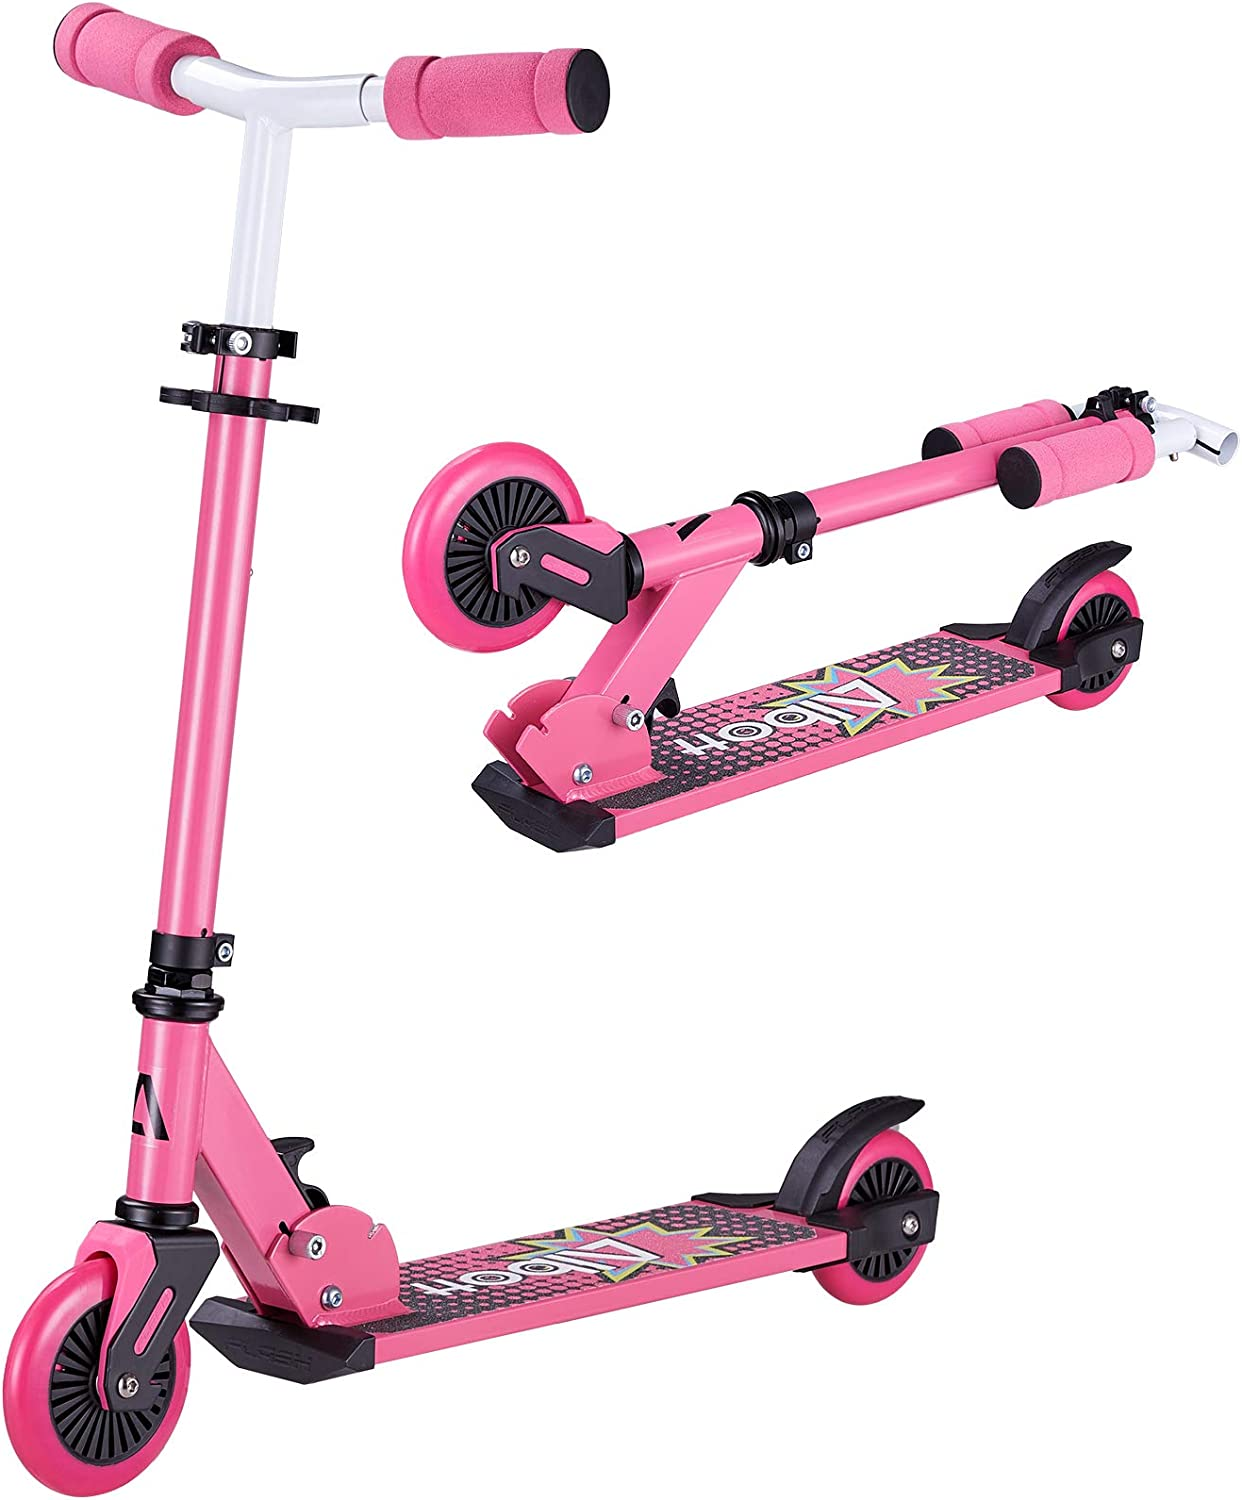 Albott Kick Scooter for Kids Super beauty product restock quality top! Lightweight Scooters - Foldable Nippon regular agency Por